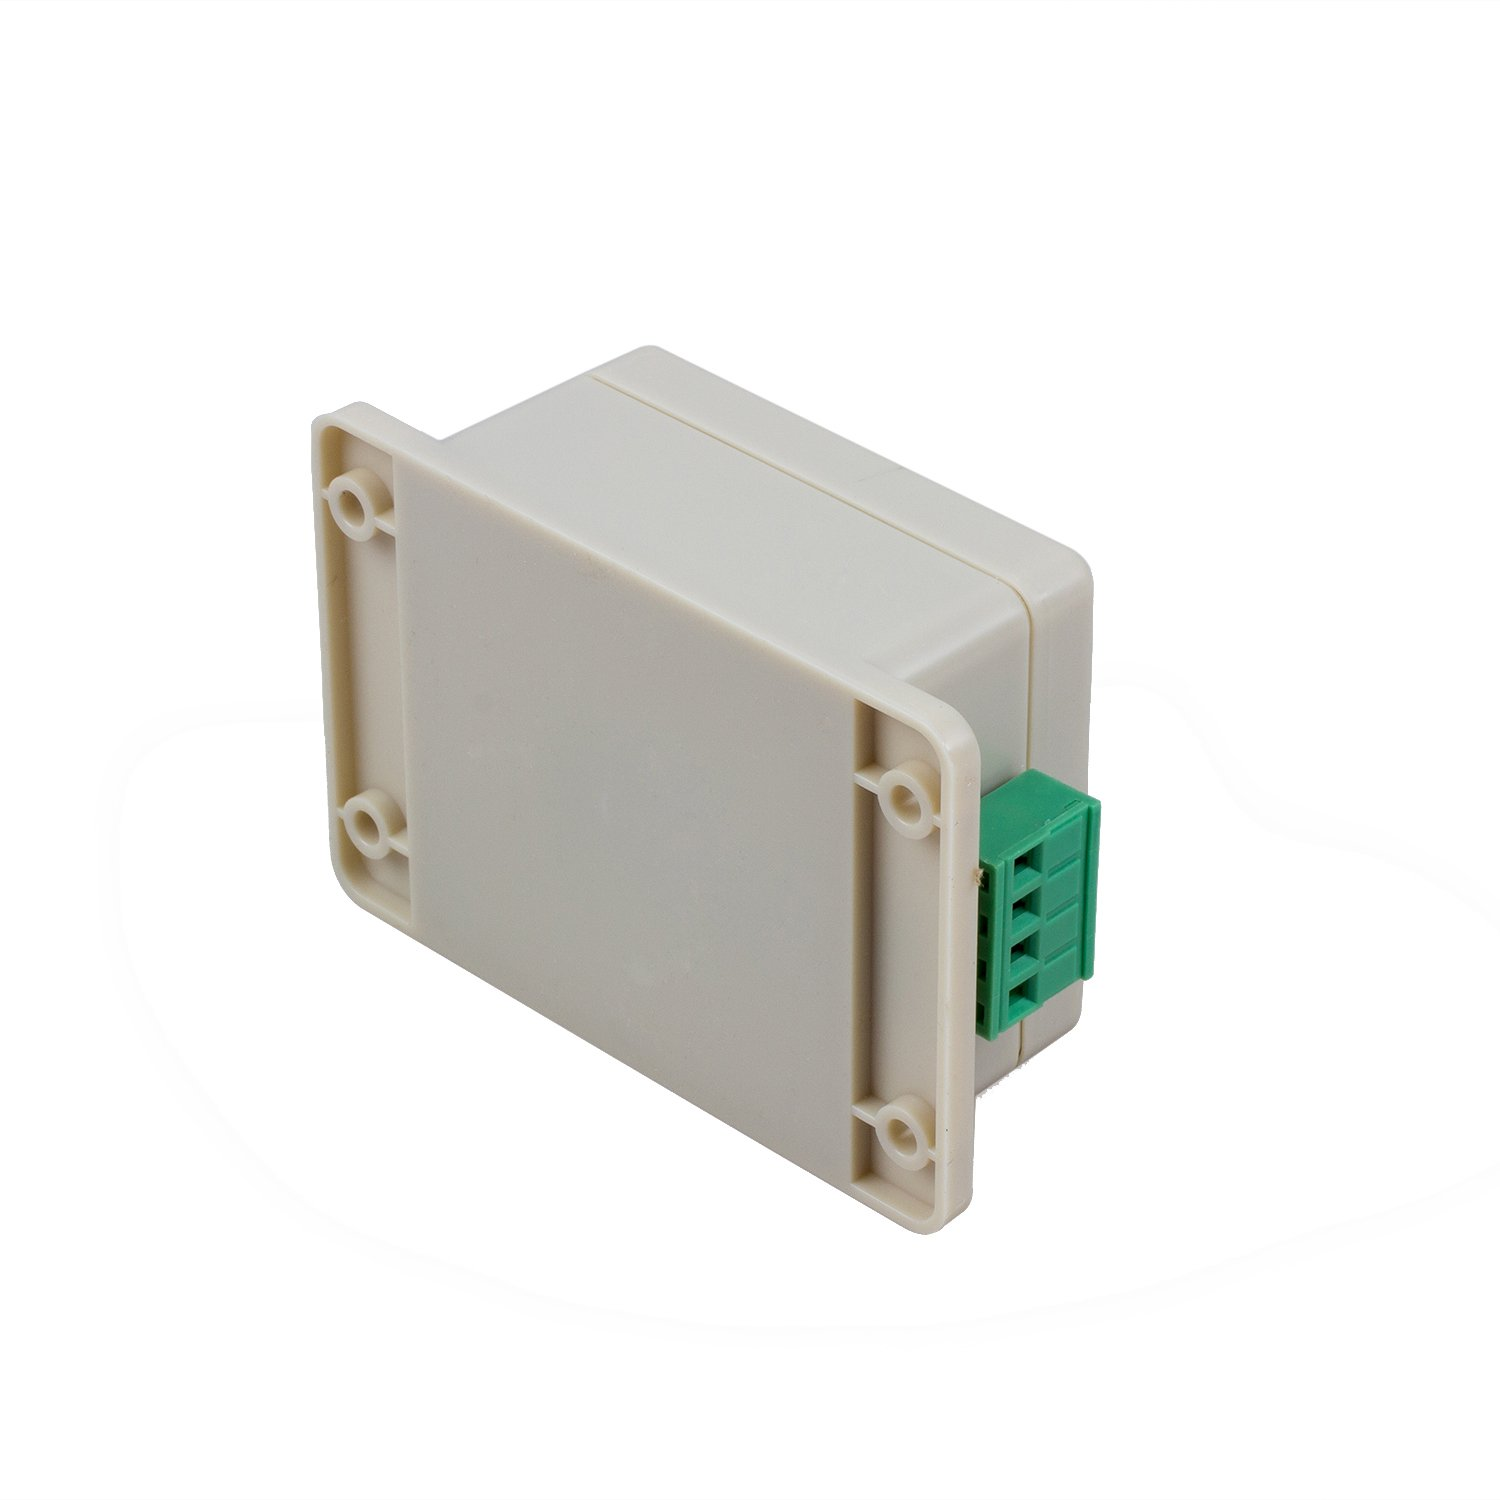 Bestled Pwm Dimming Controller For Led Lights Ribbon Strip 12 Light Dimmer Switch Wiring Diagram Electrical Is It Possible To Do A 24 Volt 12v 24v 8 Amp Switches Home Commercial Industrial